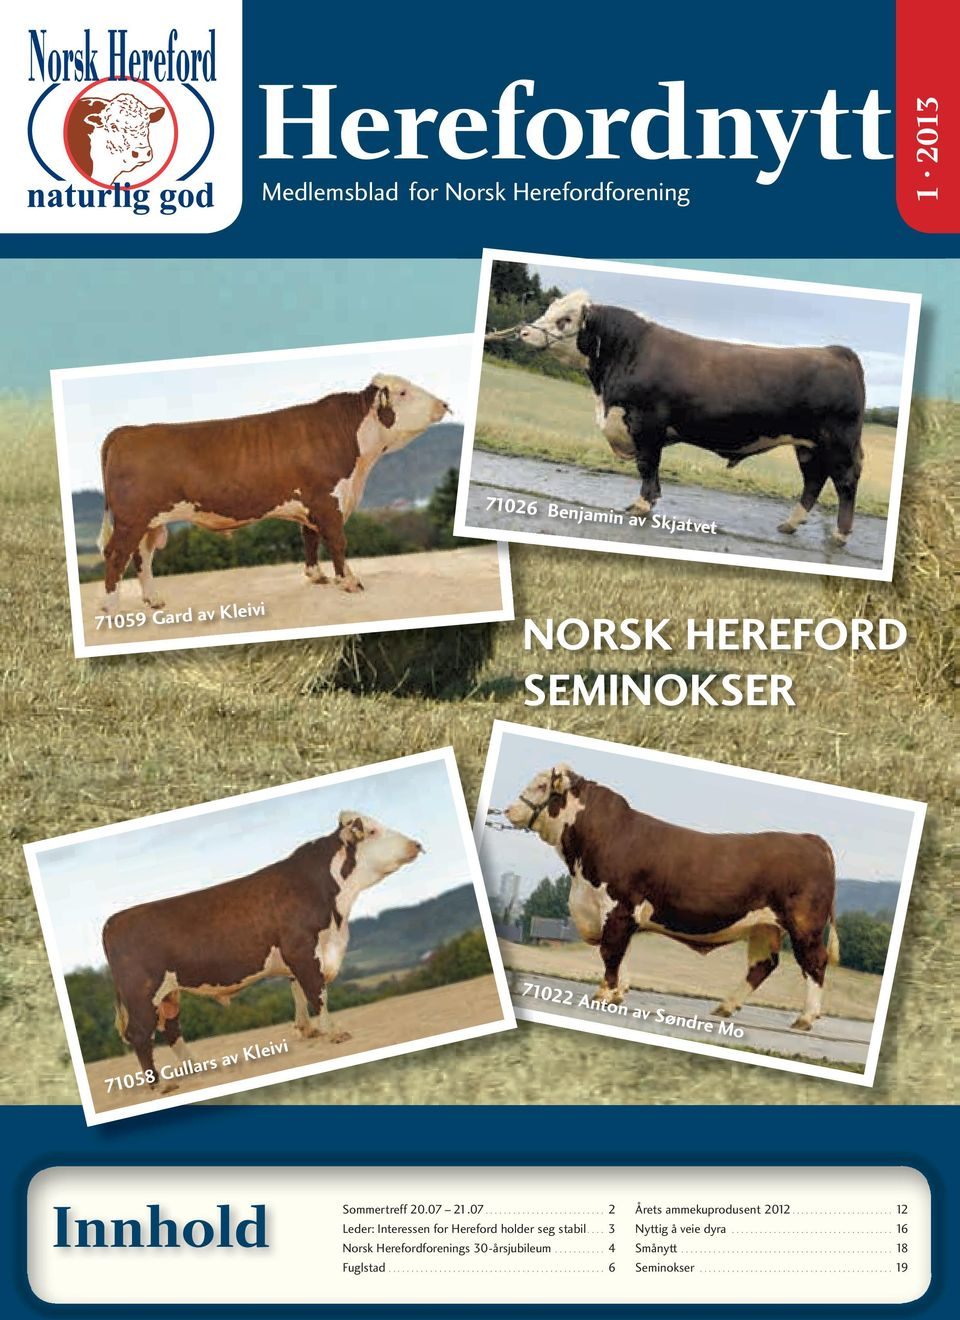 20.07 21.07... 2 Leder: Interessen for Hereford holder seg stabil.